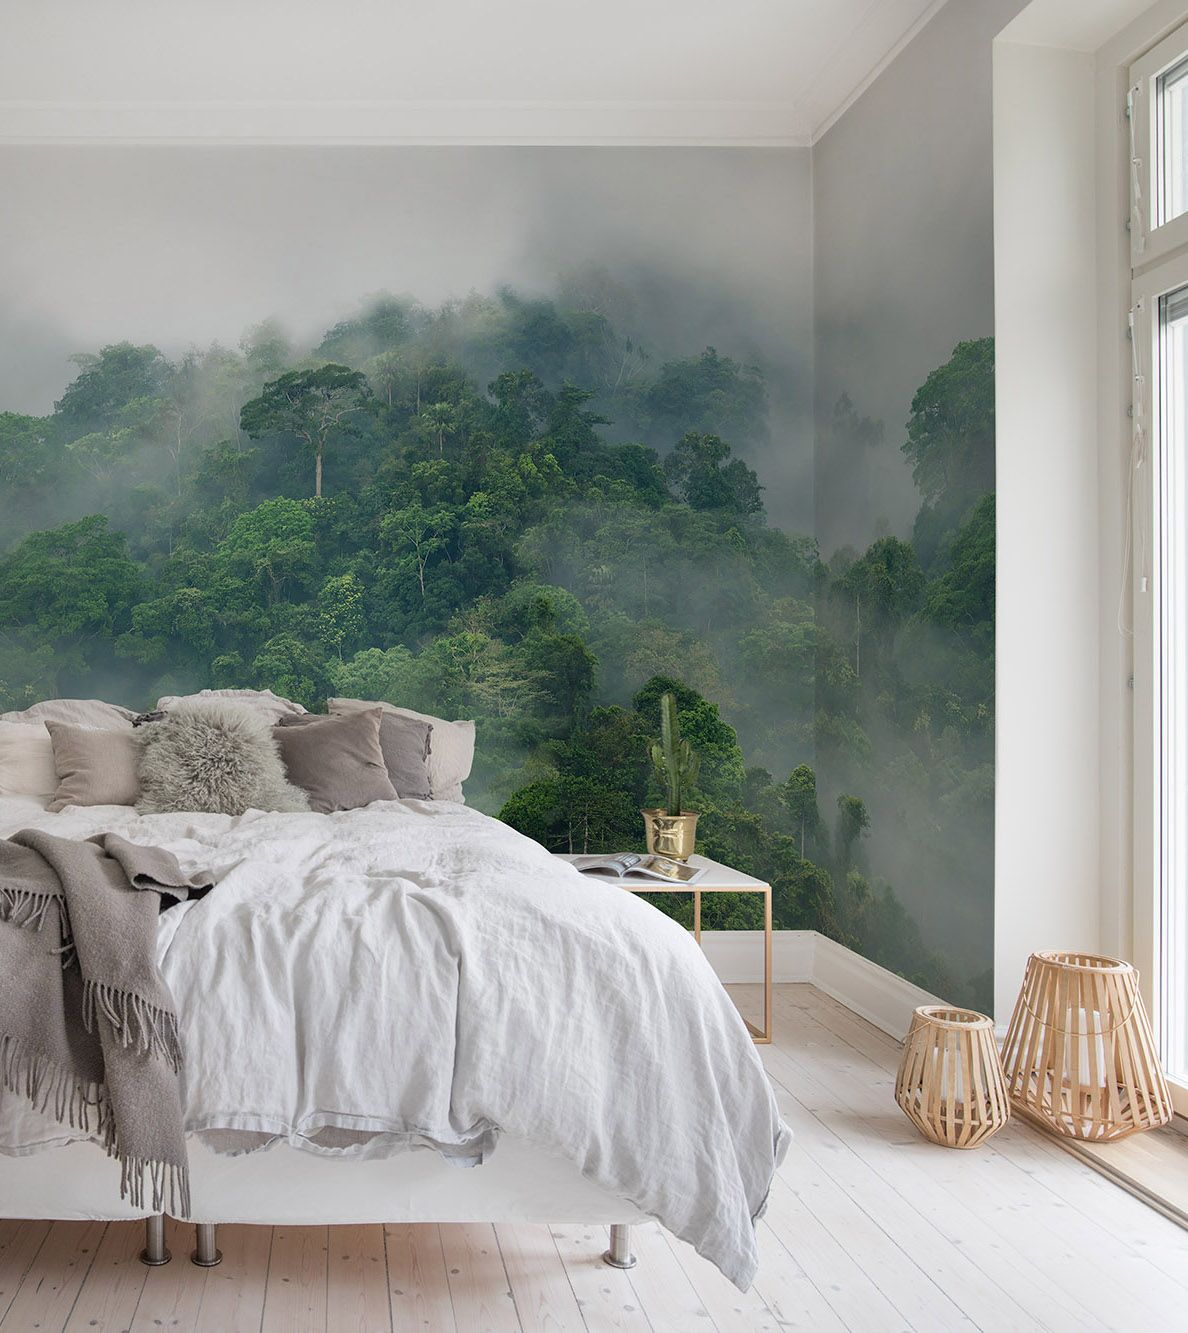 Moderne Schlafzimmer Tapeten Misty Forest In 2019 Urban Jungle Tapeten Und